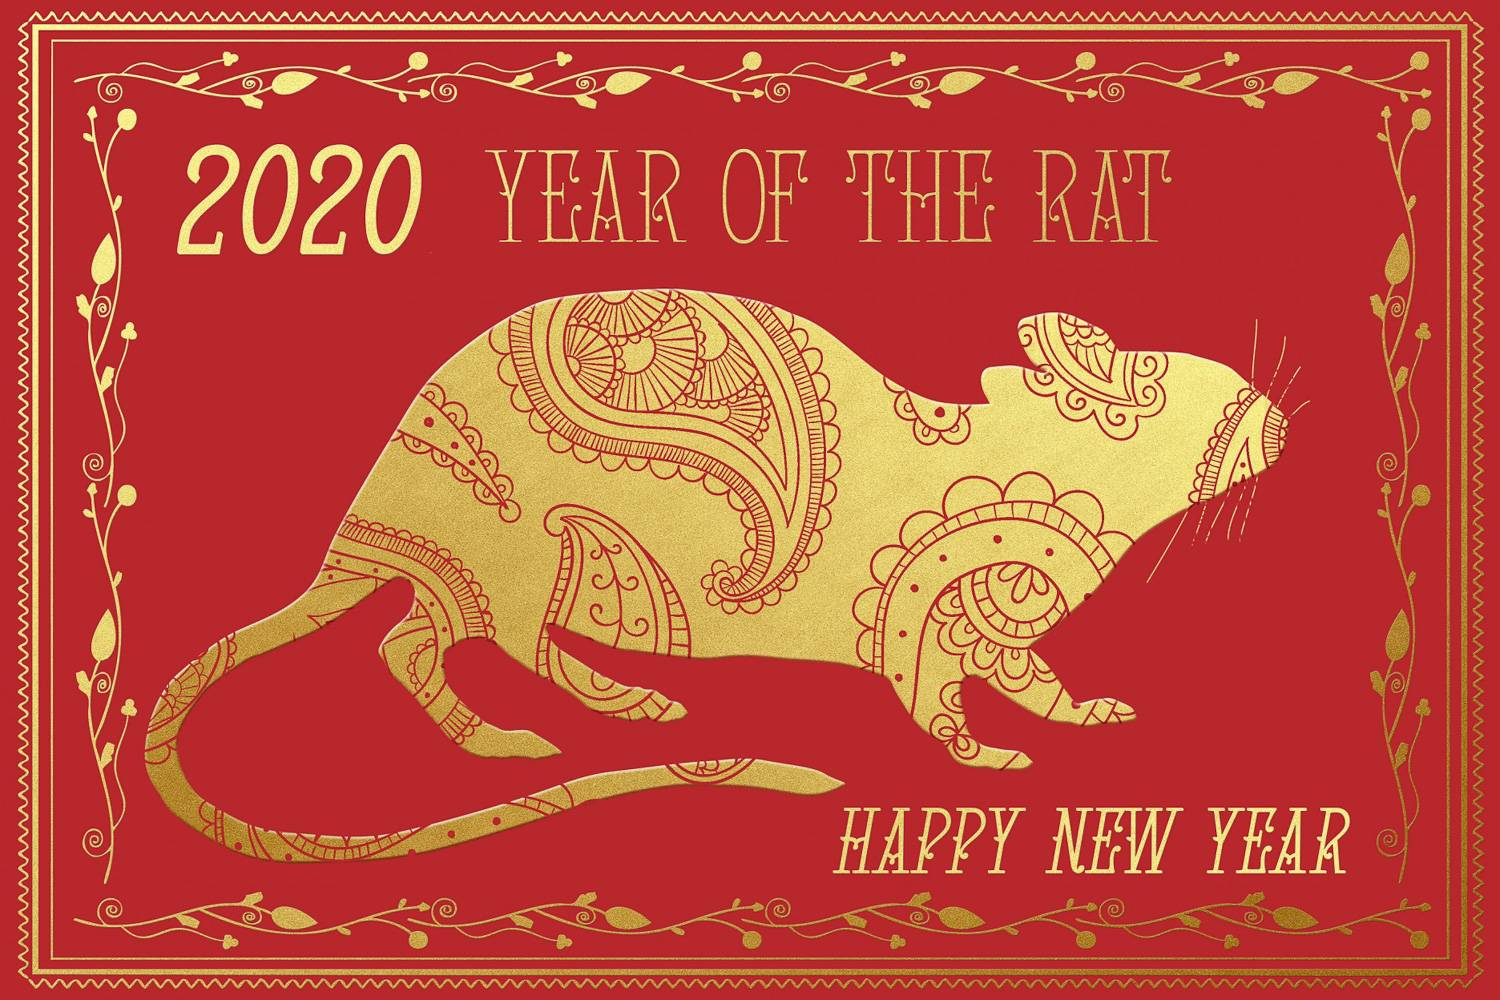 Image of a red and gold card with rat design for Chinese Year of the Rat 2020